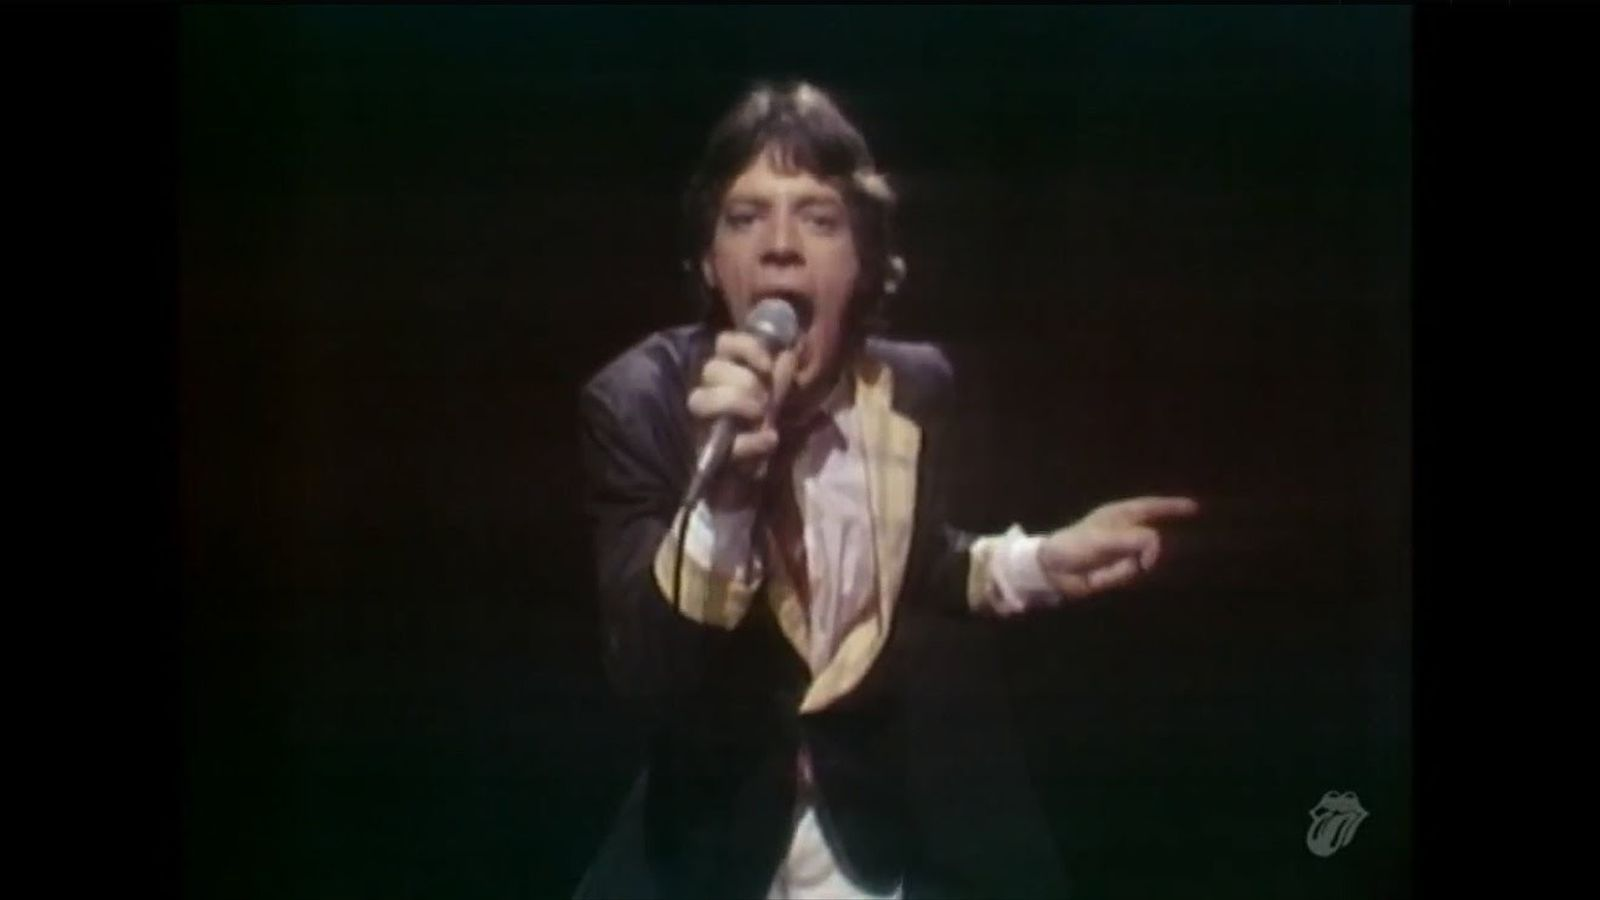 'Miss you', dels Rolling Stones